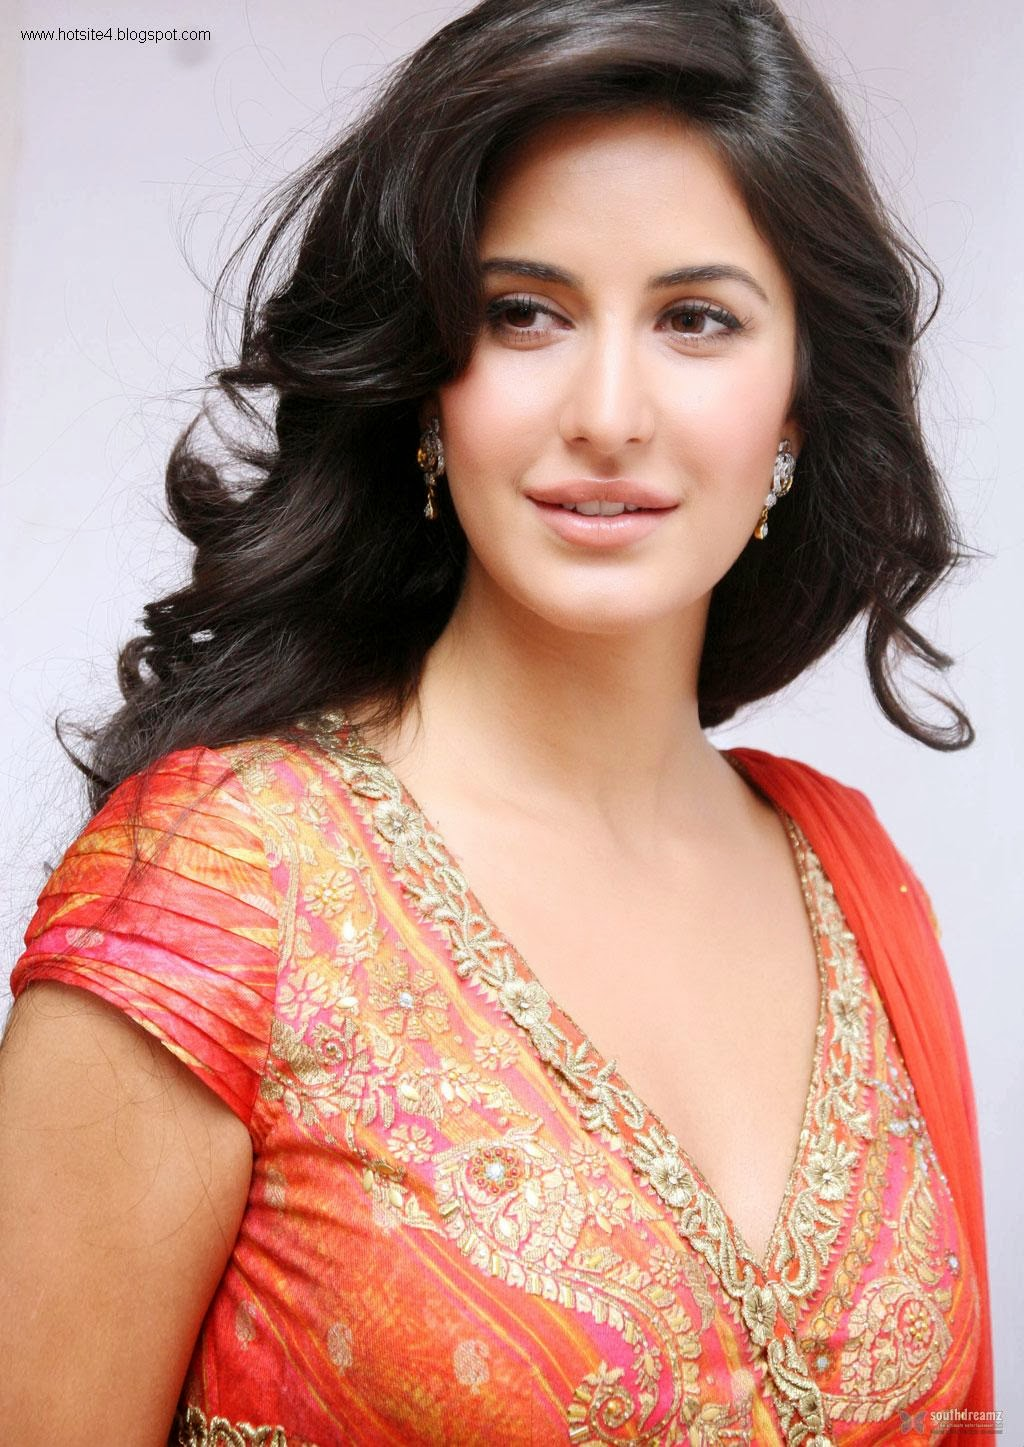 Hot Photo Gallery 2015 Katrina Kaif Hd 2014 Wallpapers -3450